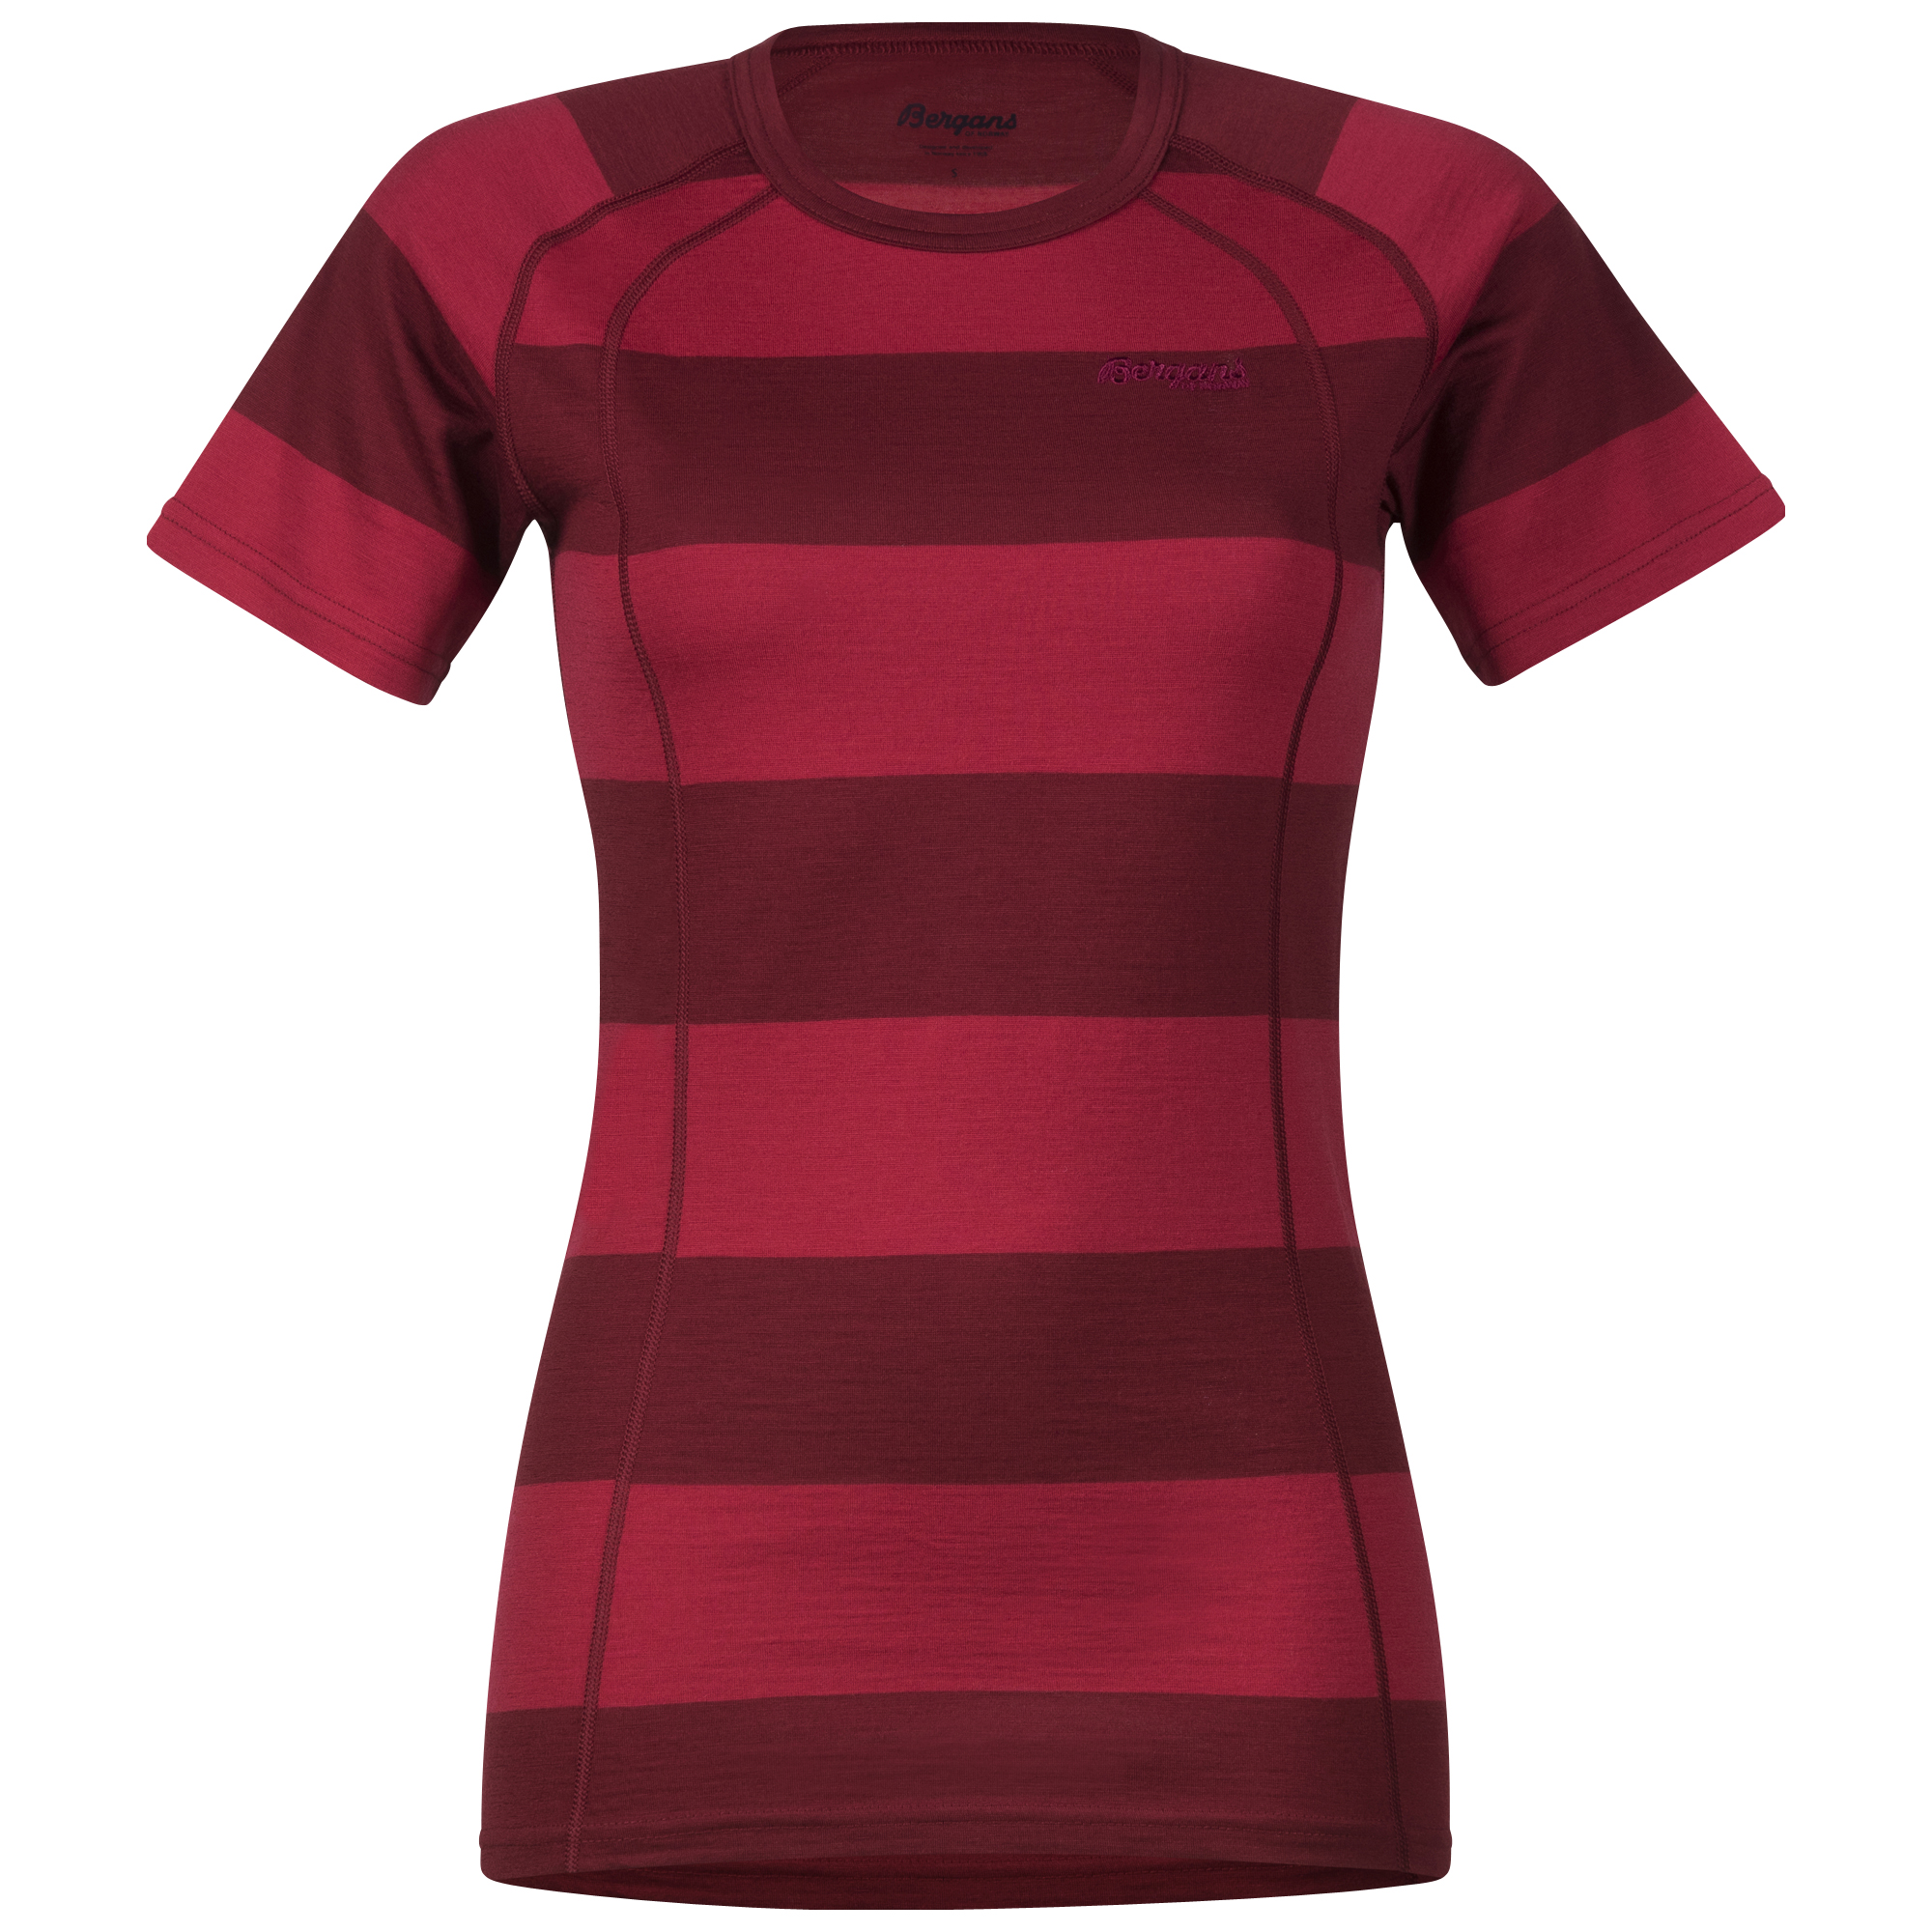 182532 Fjellrapp Lady Tee Red/Burgundy Striped